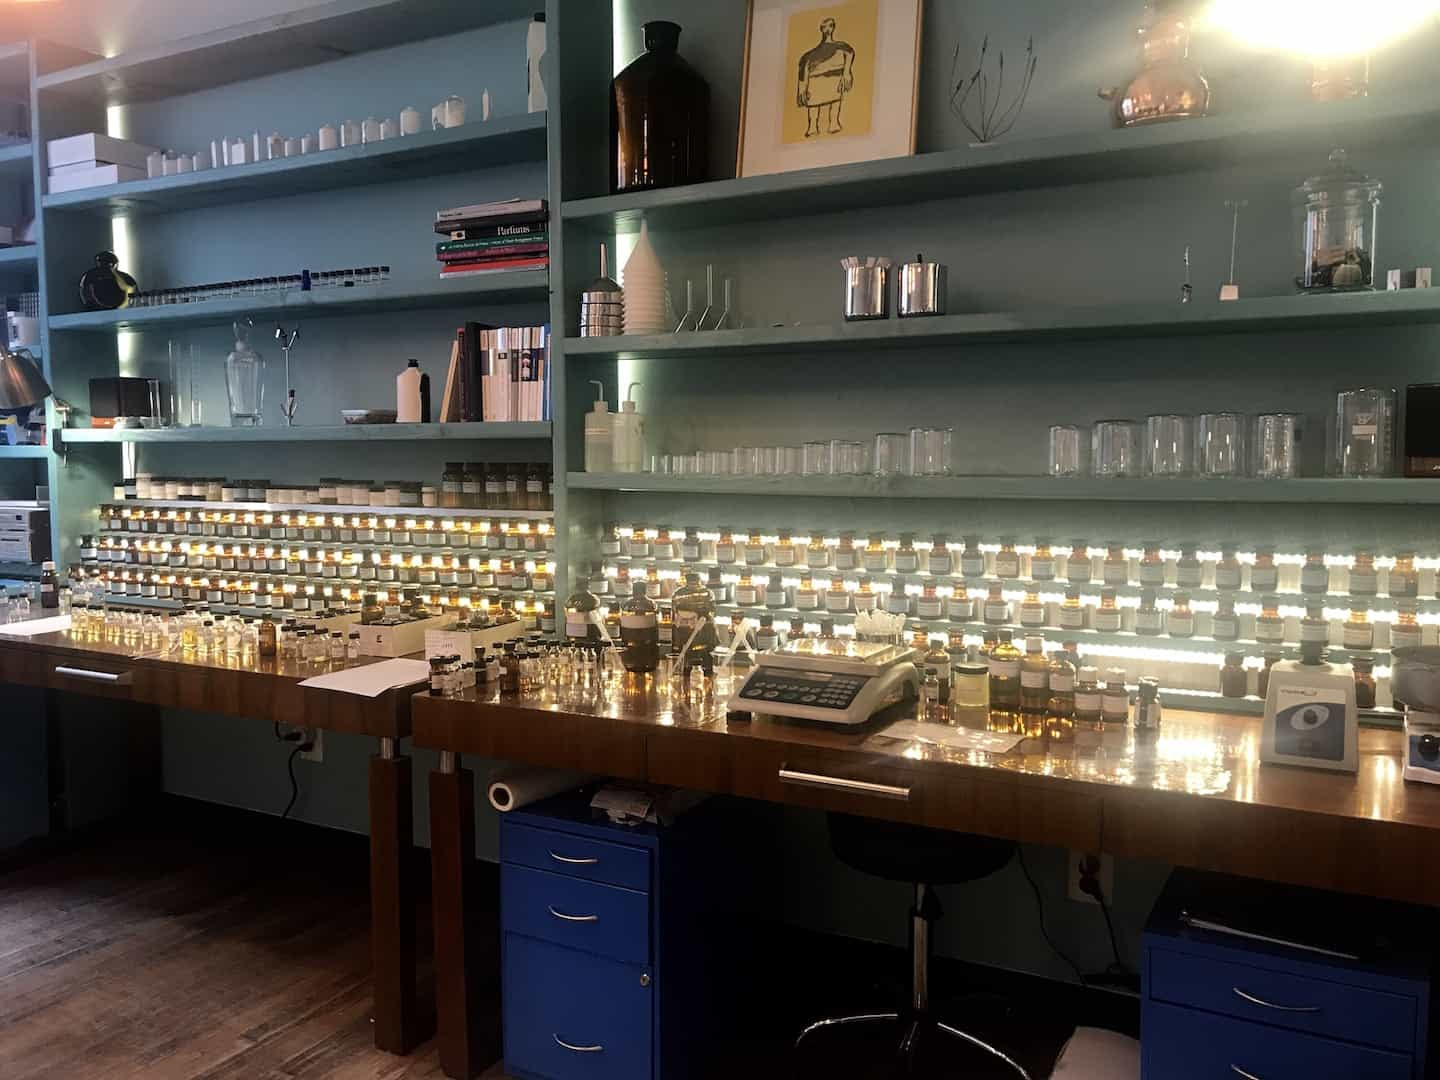 The Society of Scent in New York reminds ,e of my father's old pharmacy in Glasgow